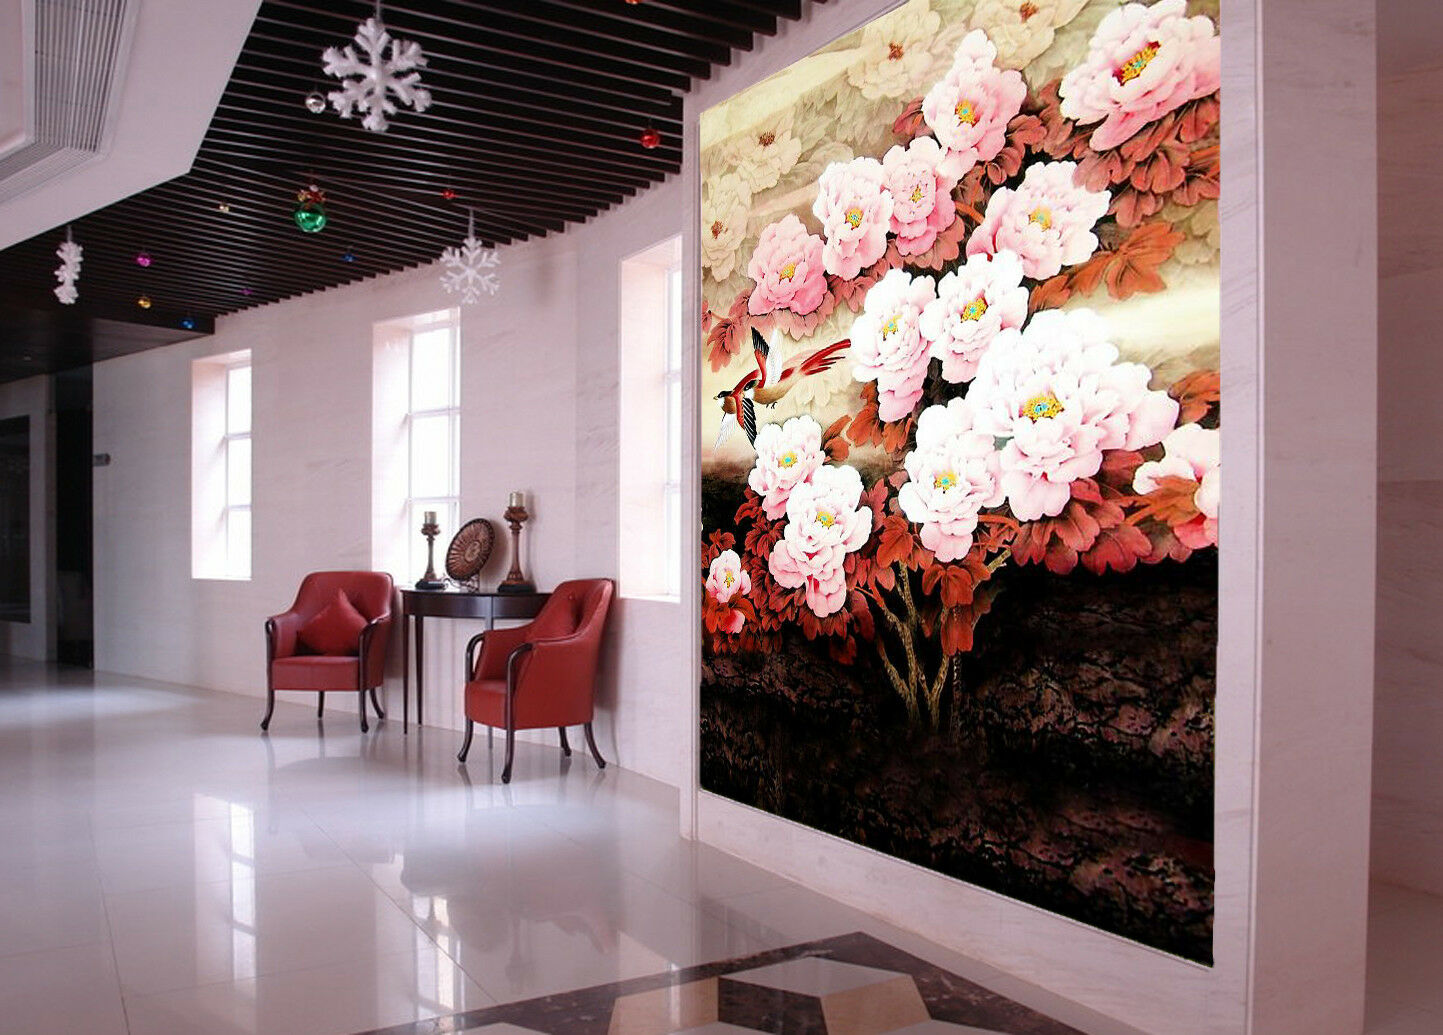 3D Bloom Flowers 4 Wallpaper Murals Wall Print Wallpaper Mural AJ WALL AU Lemon